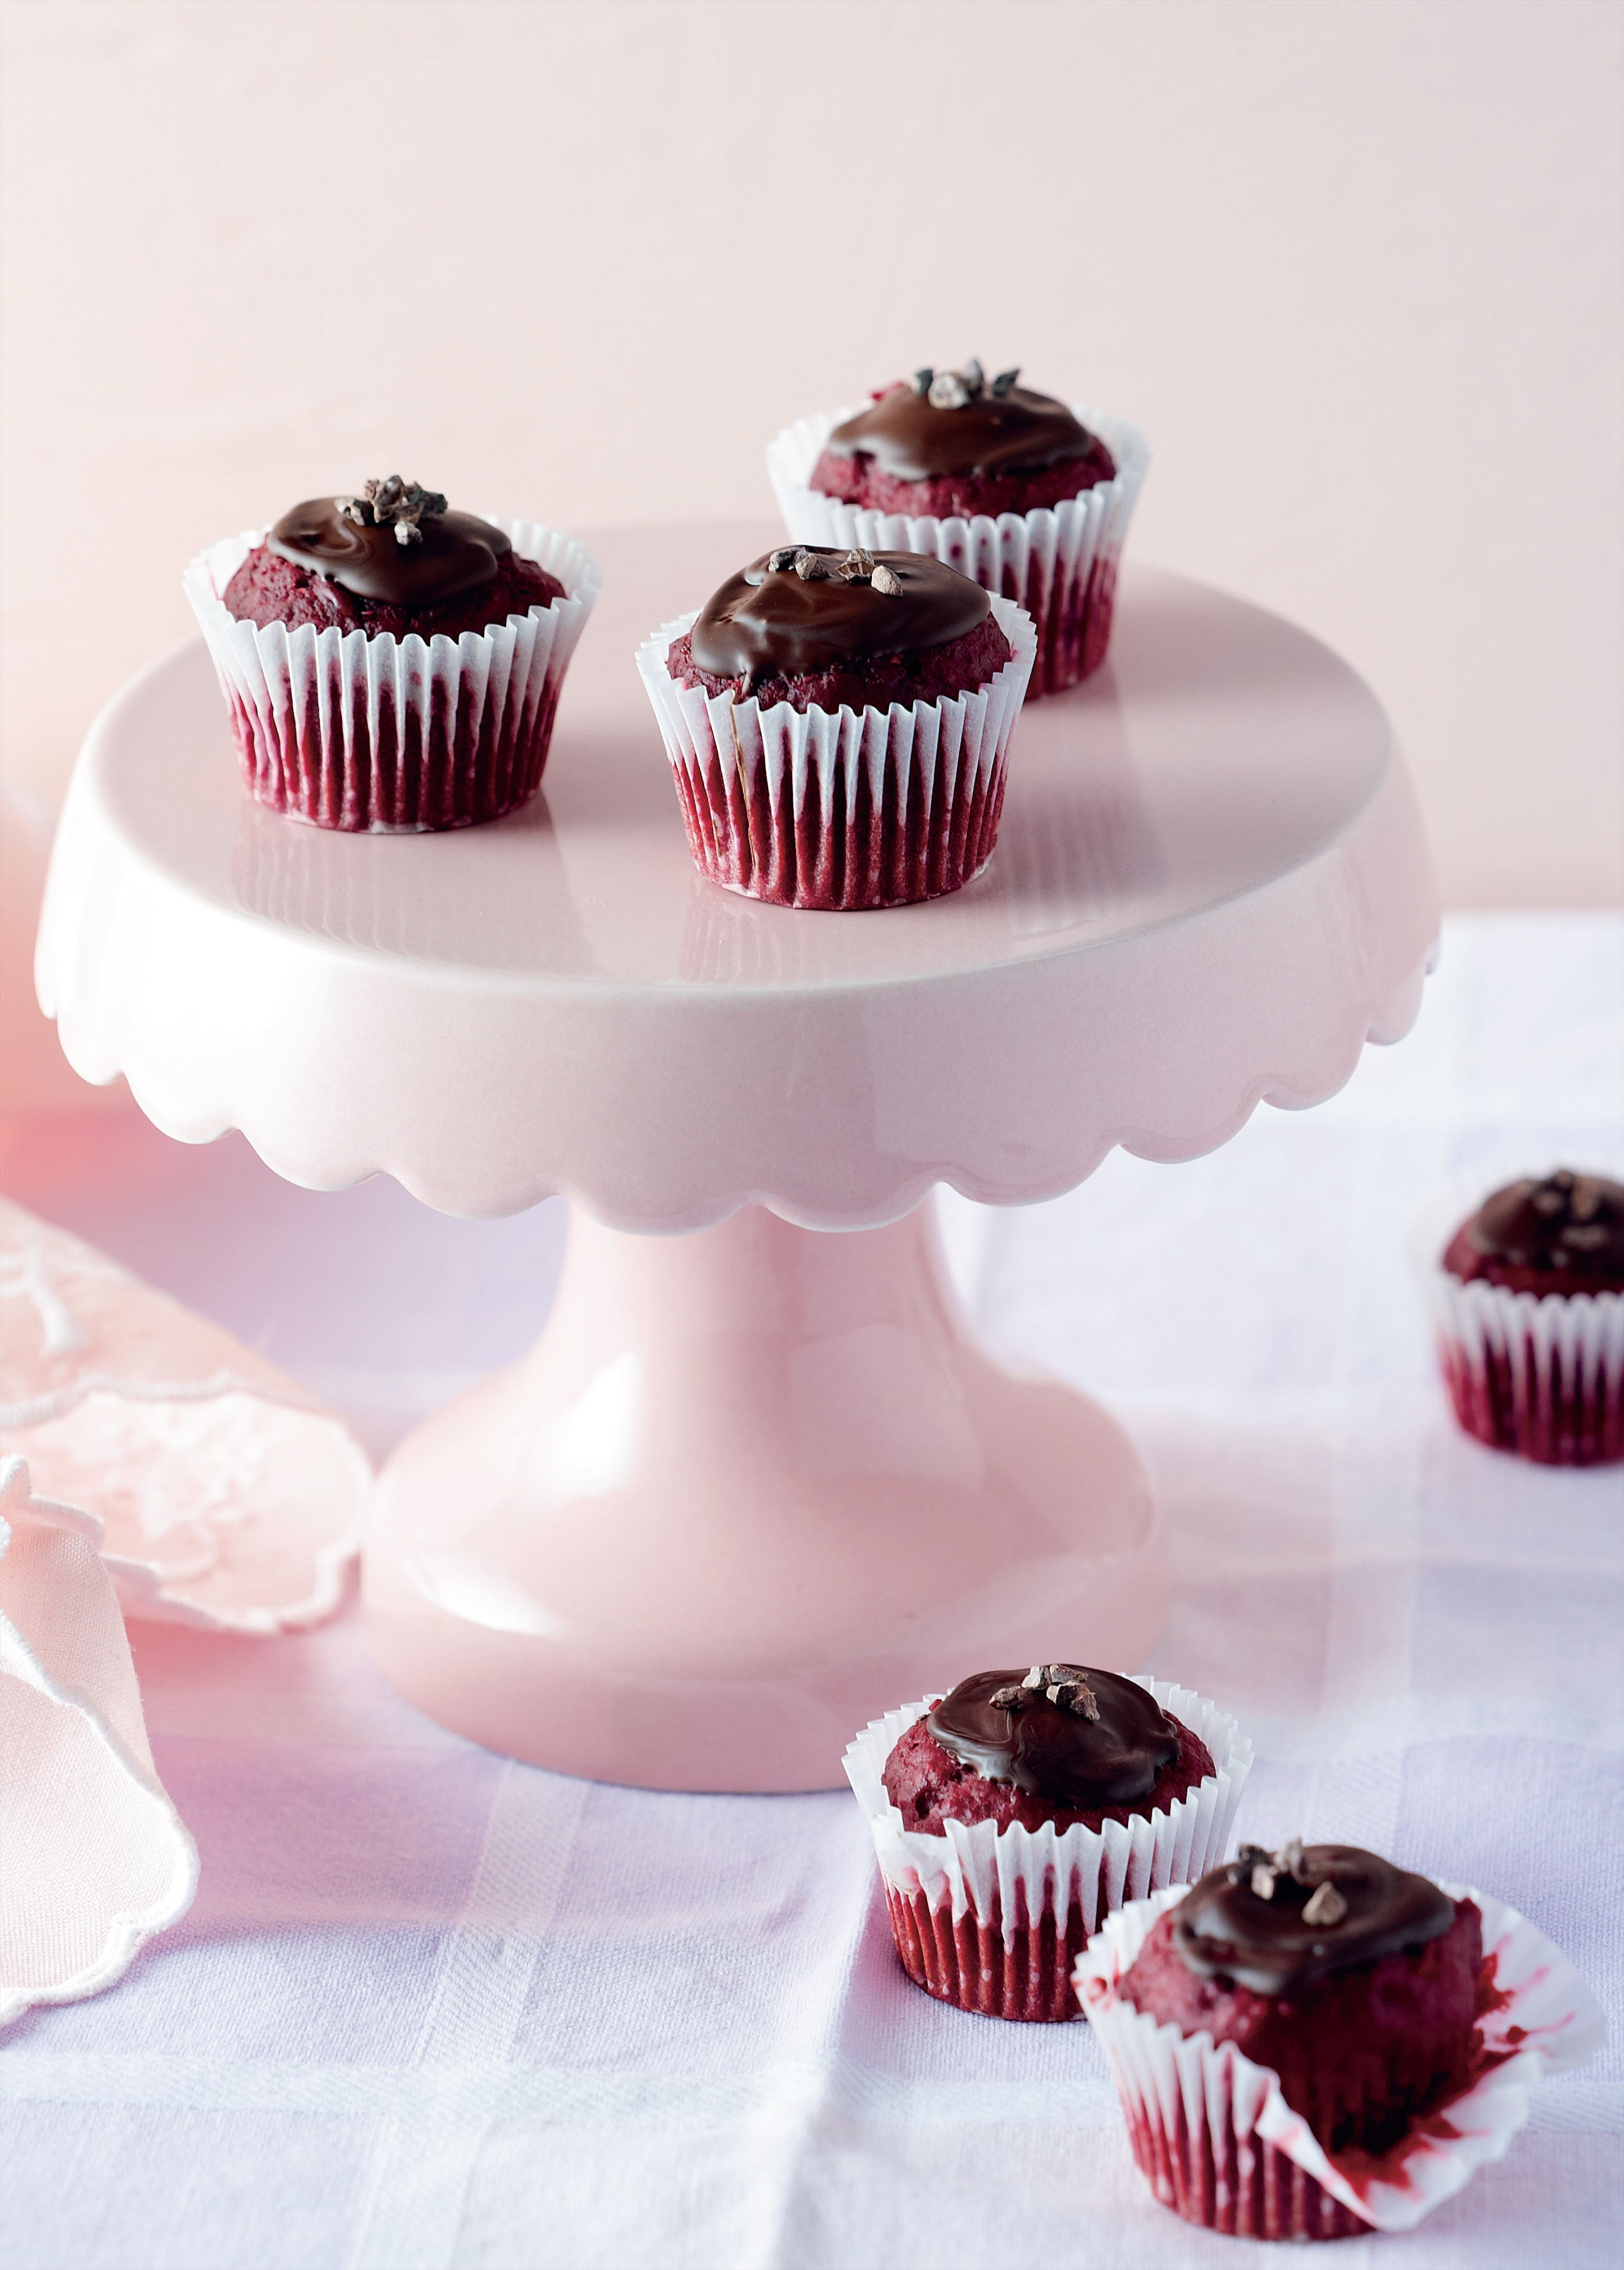 Chocolate beetroot mini cakes